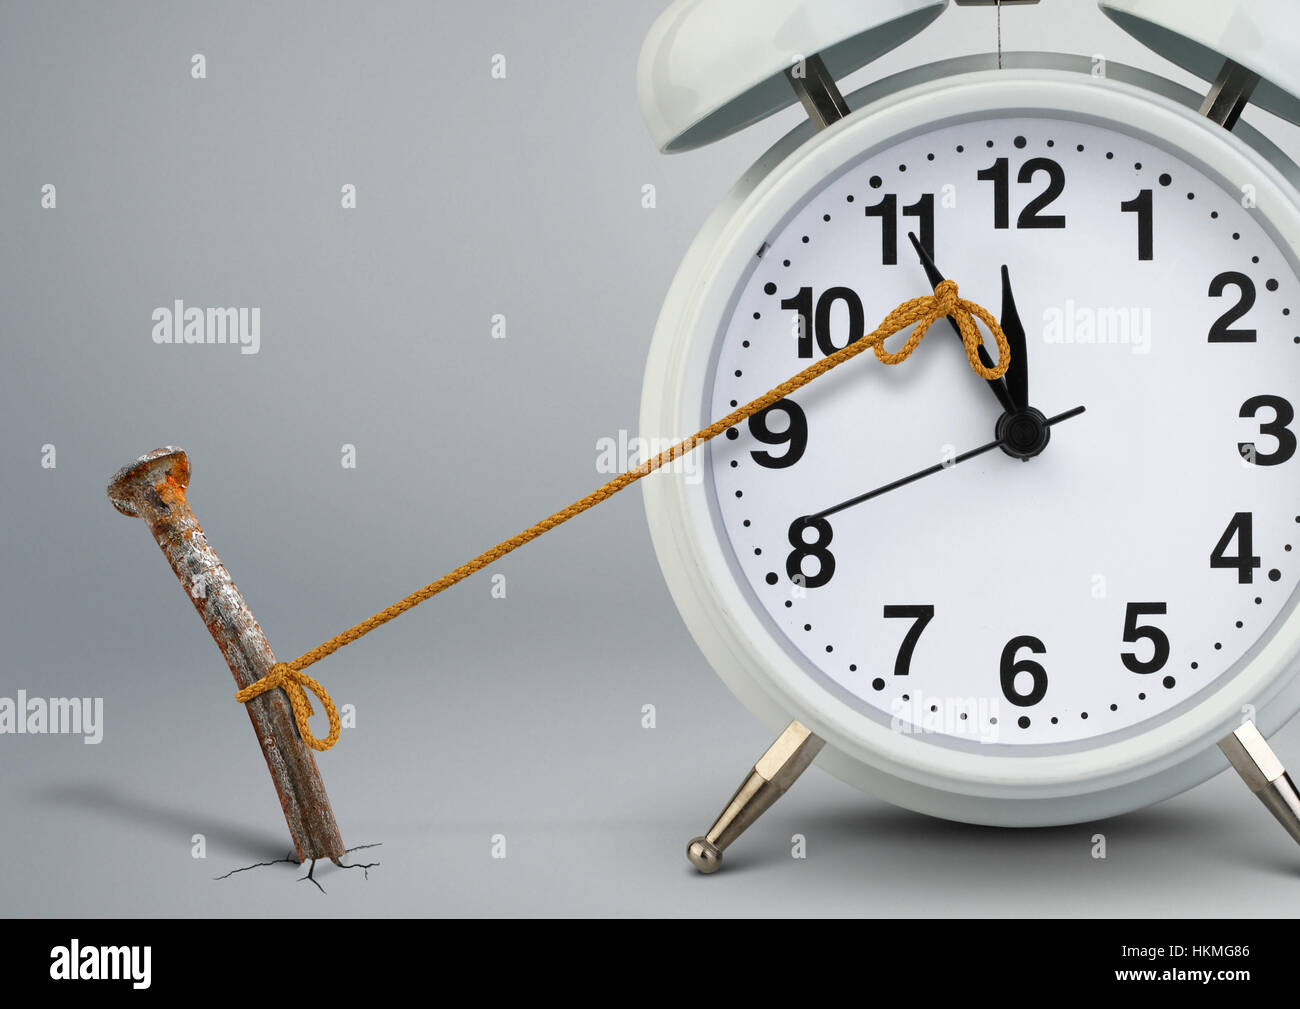 Time on clock stop by nail, delay concept - Stock Image